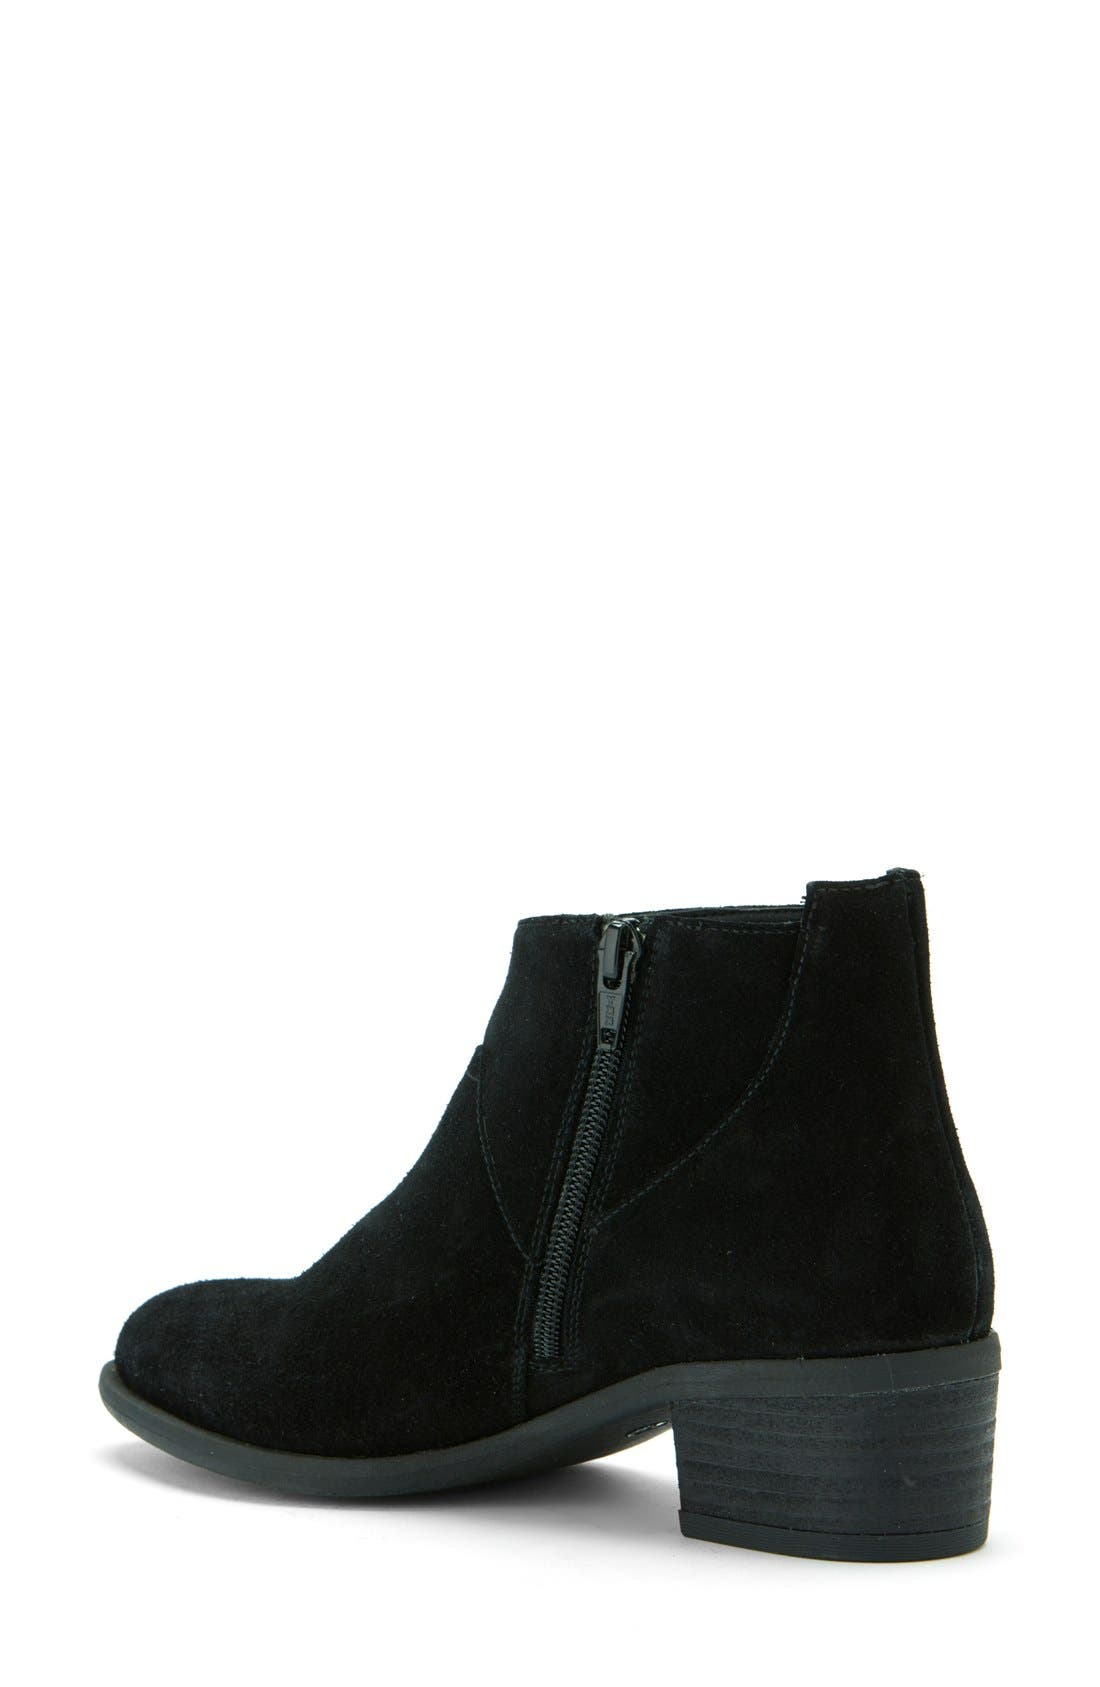 'Maddie' Waterproof Ankle Boot,                             Alternate thumbnail 4, color,                             006